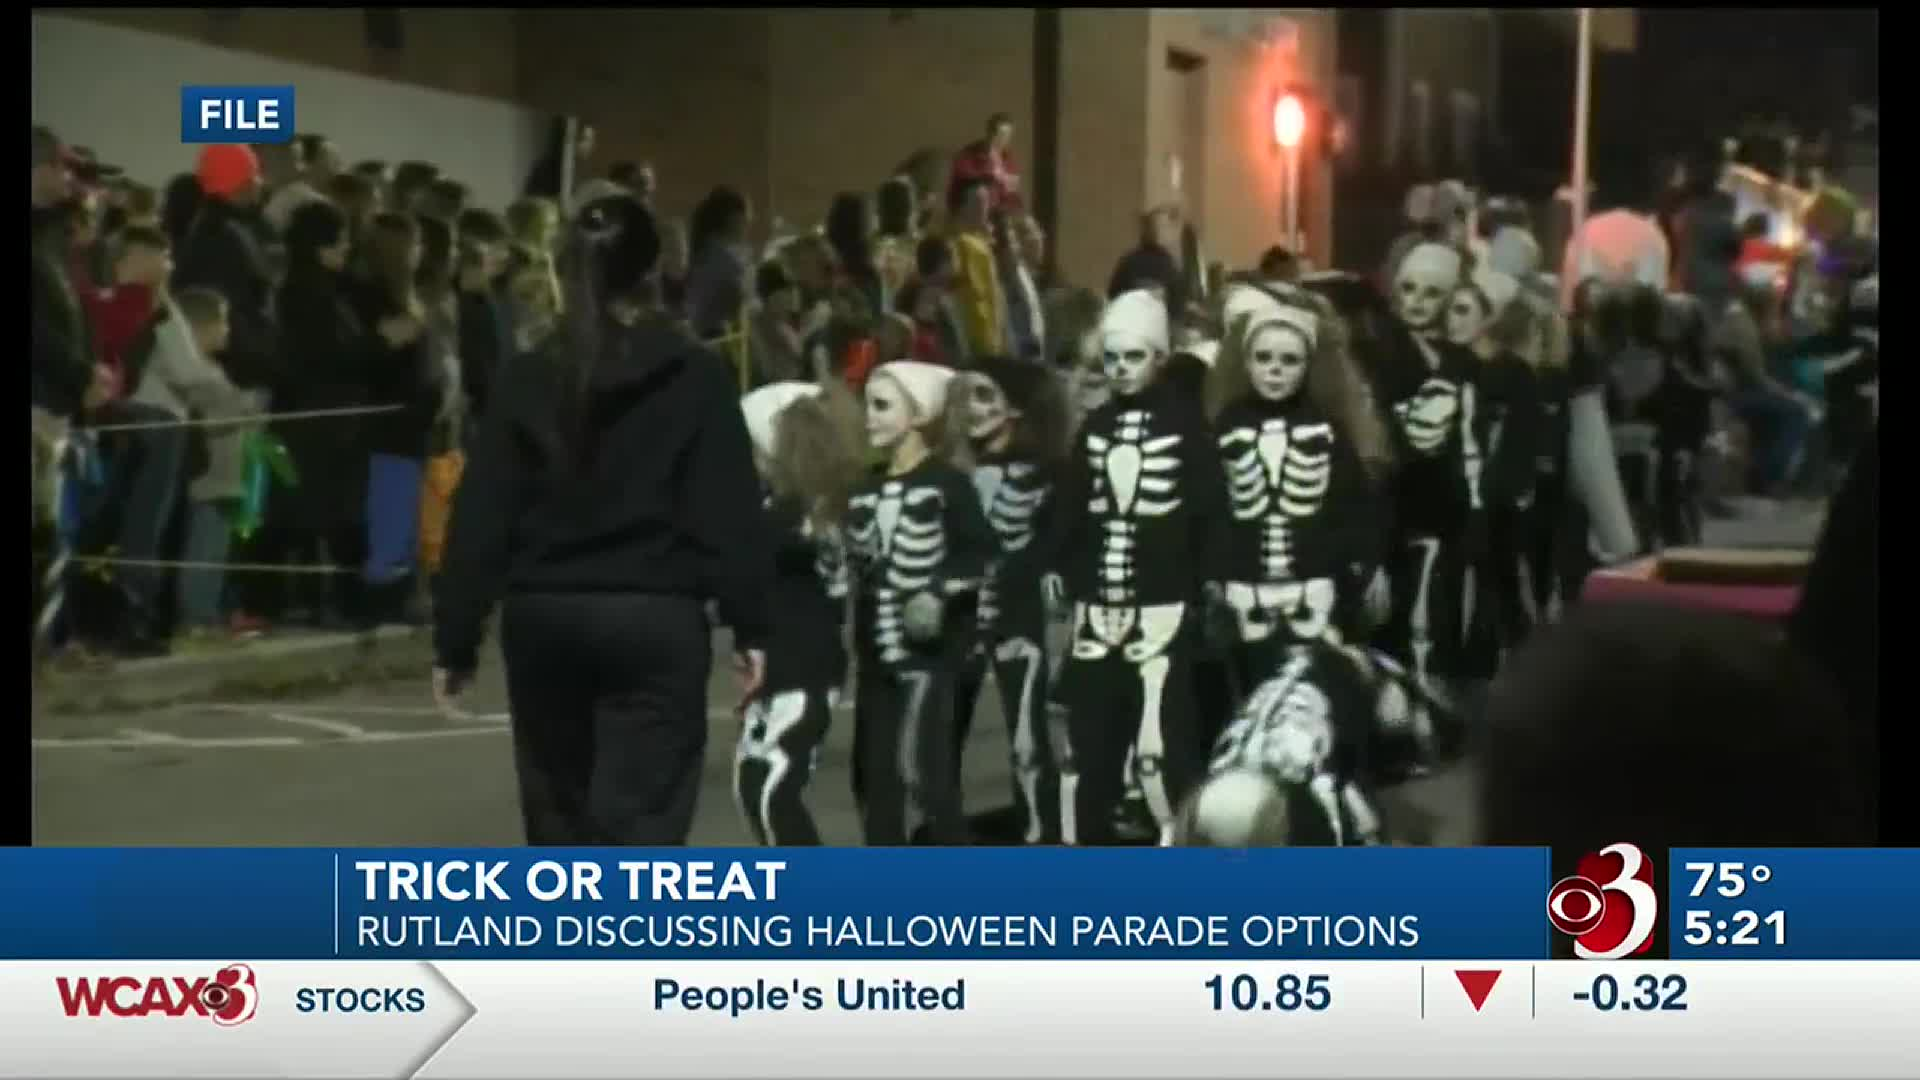 Is The Rutland Halloween Parade Cancelled 2020 Rutland discussing Halloween parade options